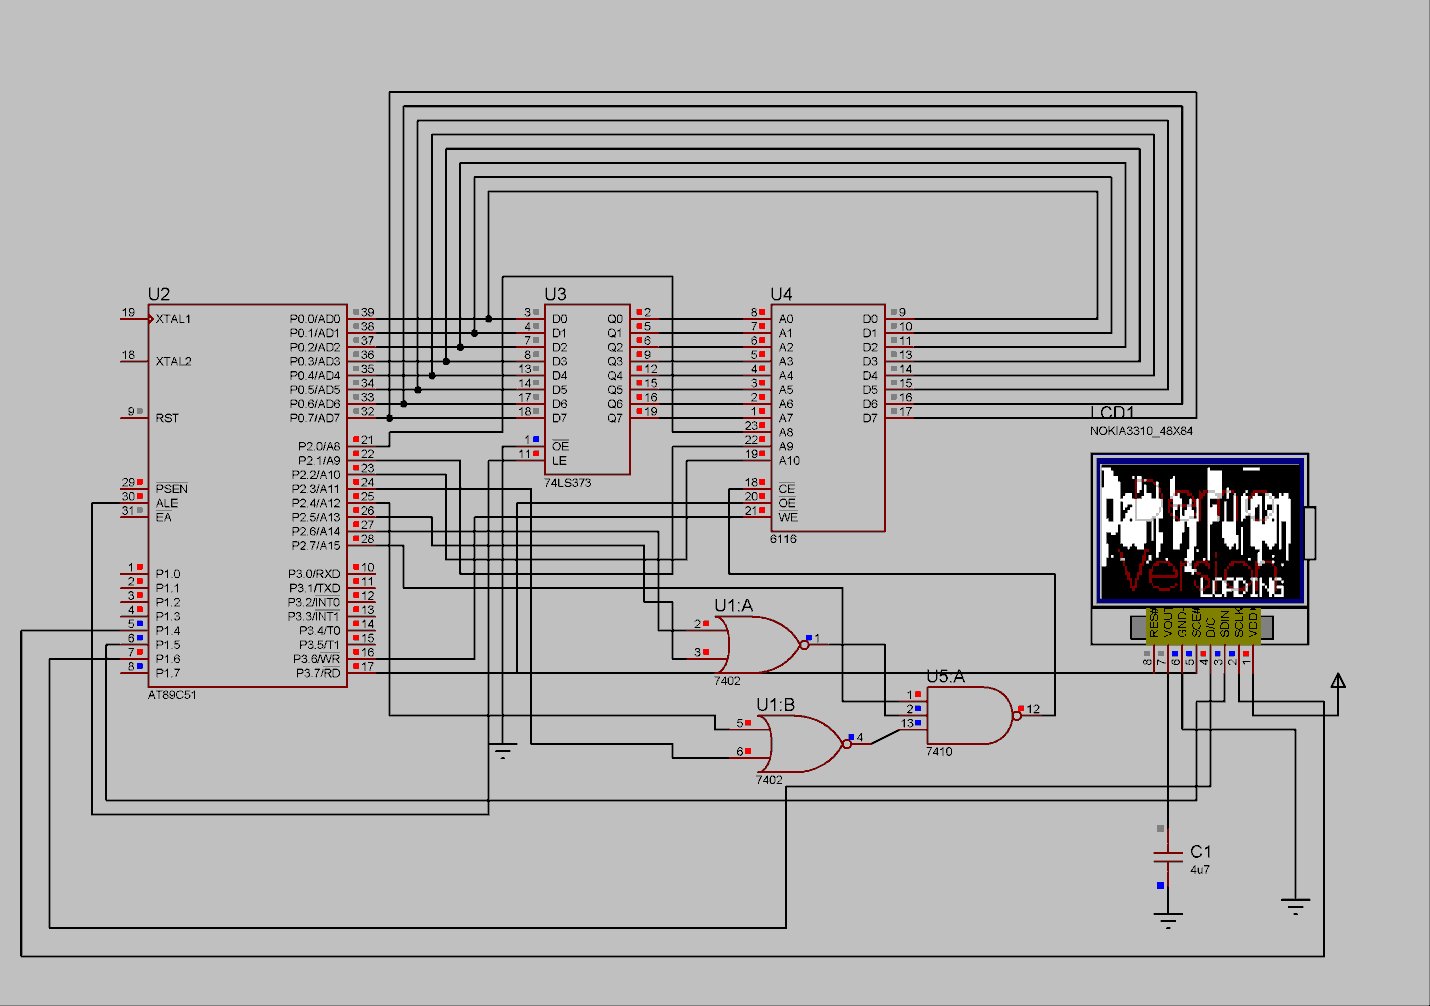 LCD Paint With Nokia 3310 Screen And 8051 Microcontroller DMC Inc - Circuit Diagram Nokia 3310